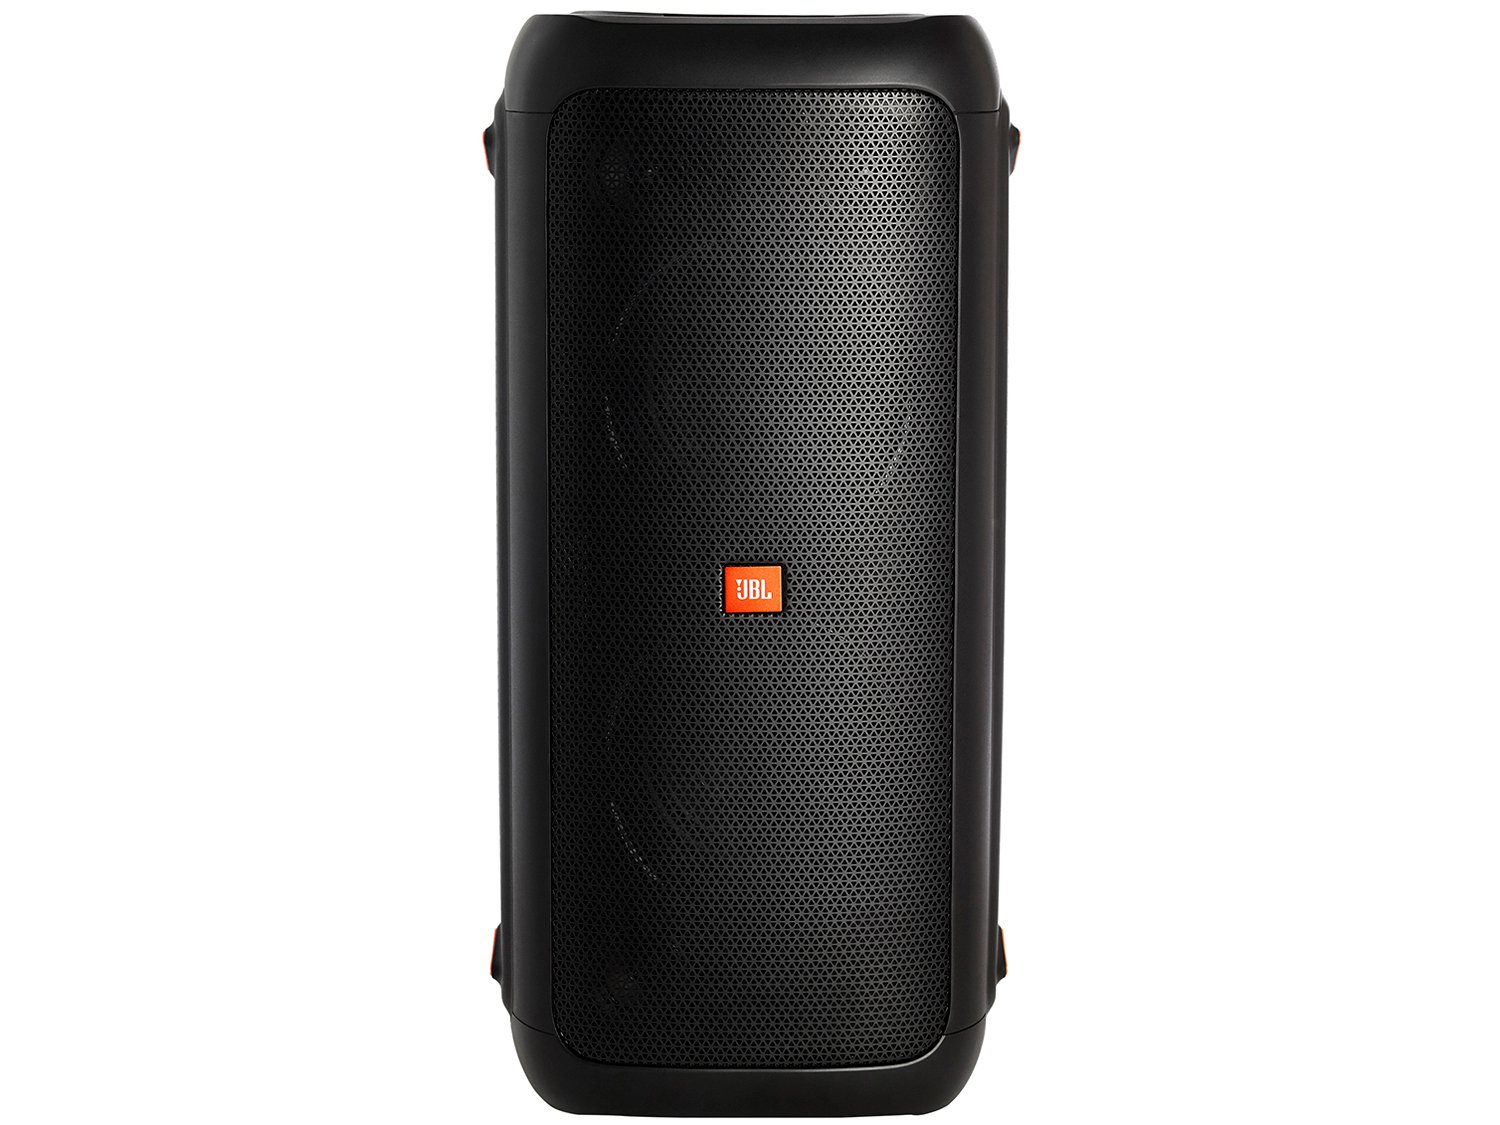 Caixa de Som Portátil Bluetooth JBL Party Box 300 - USB 120W - Bivolt - 12